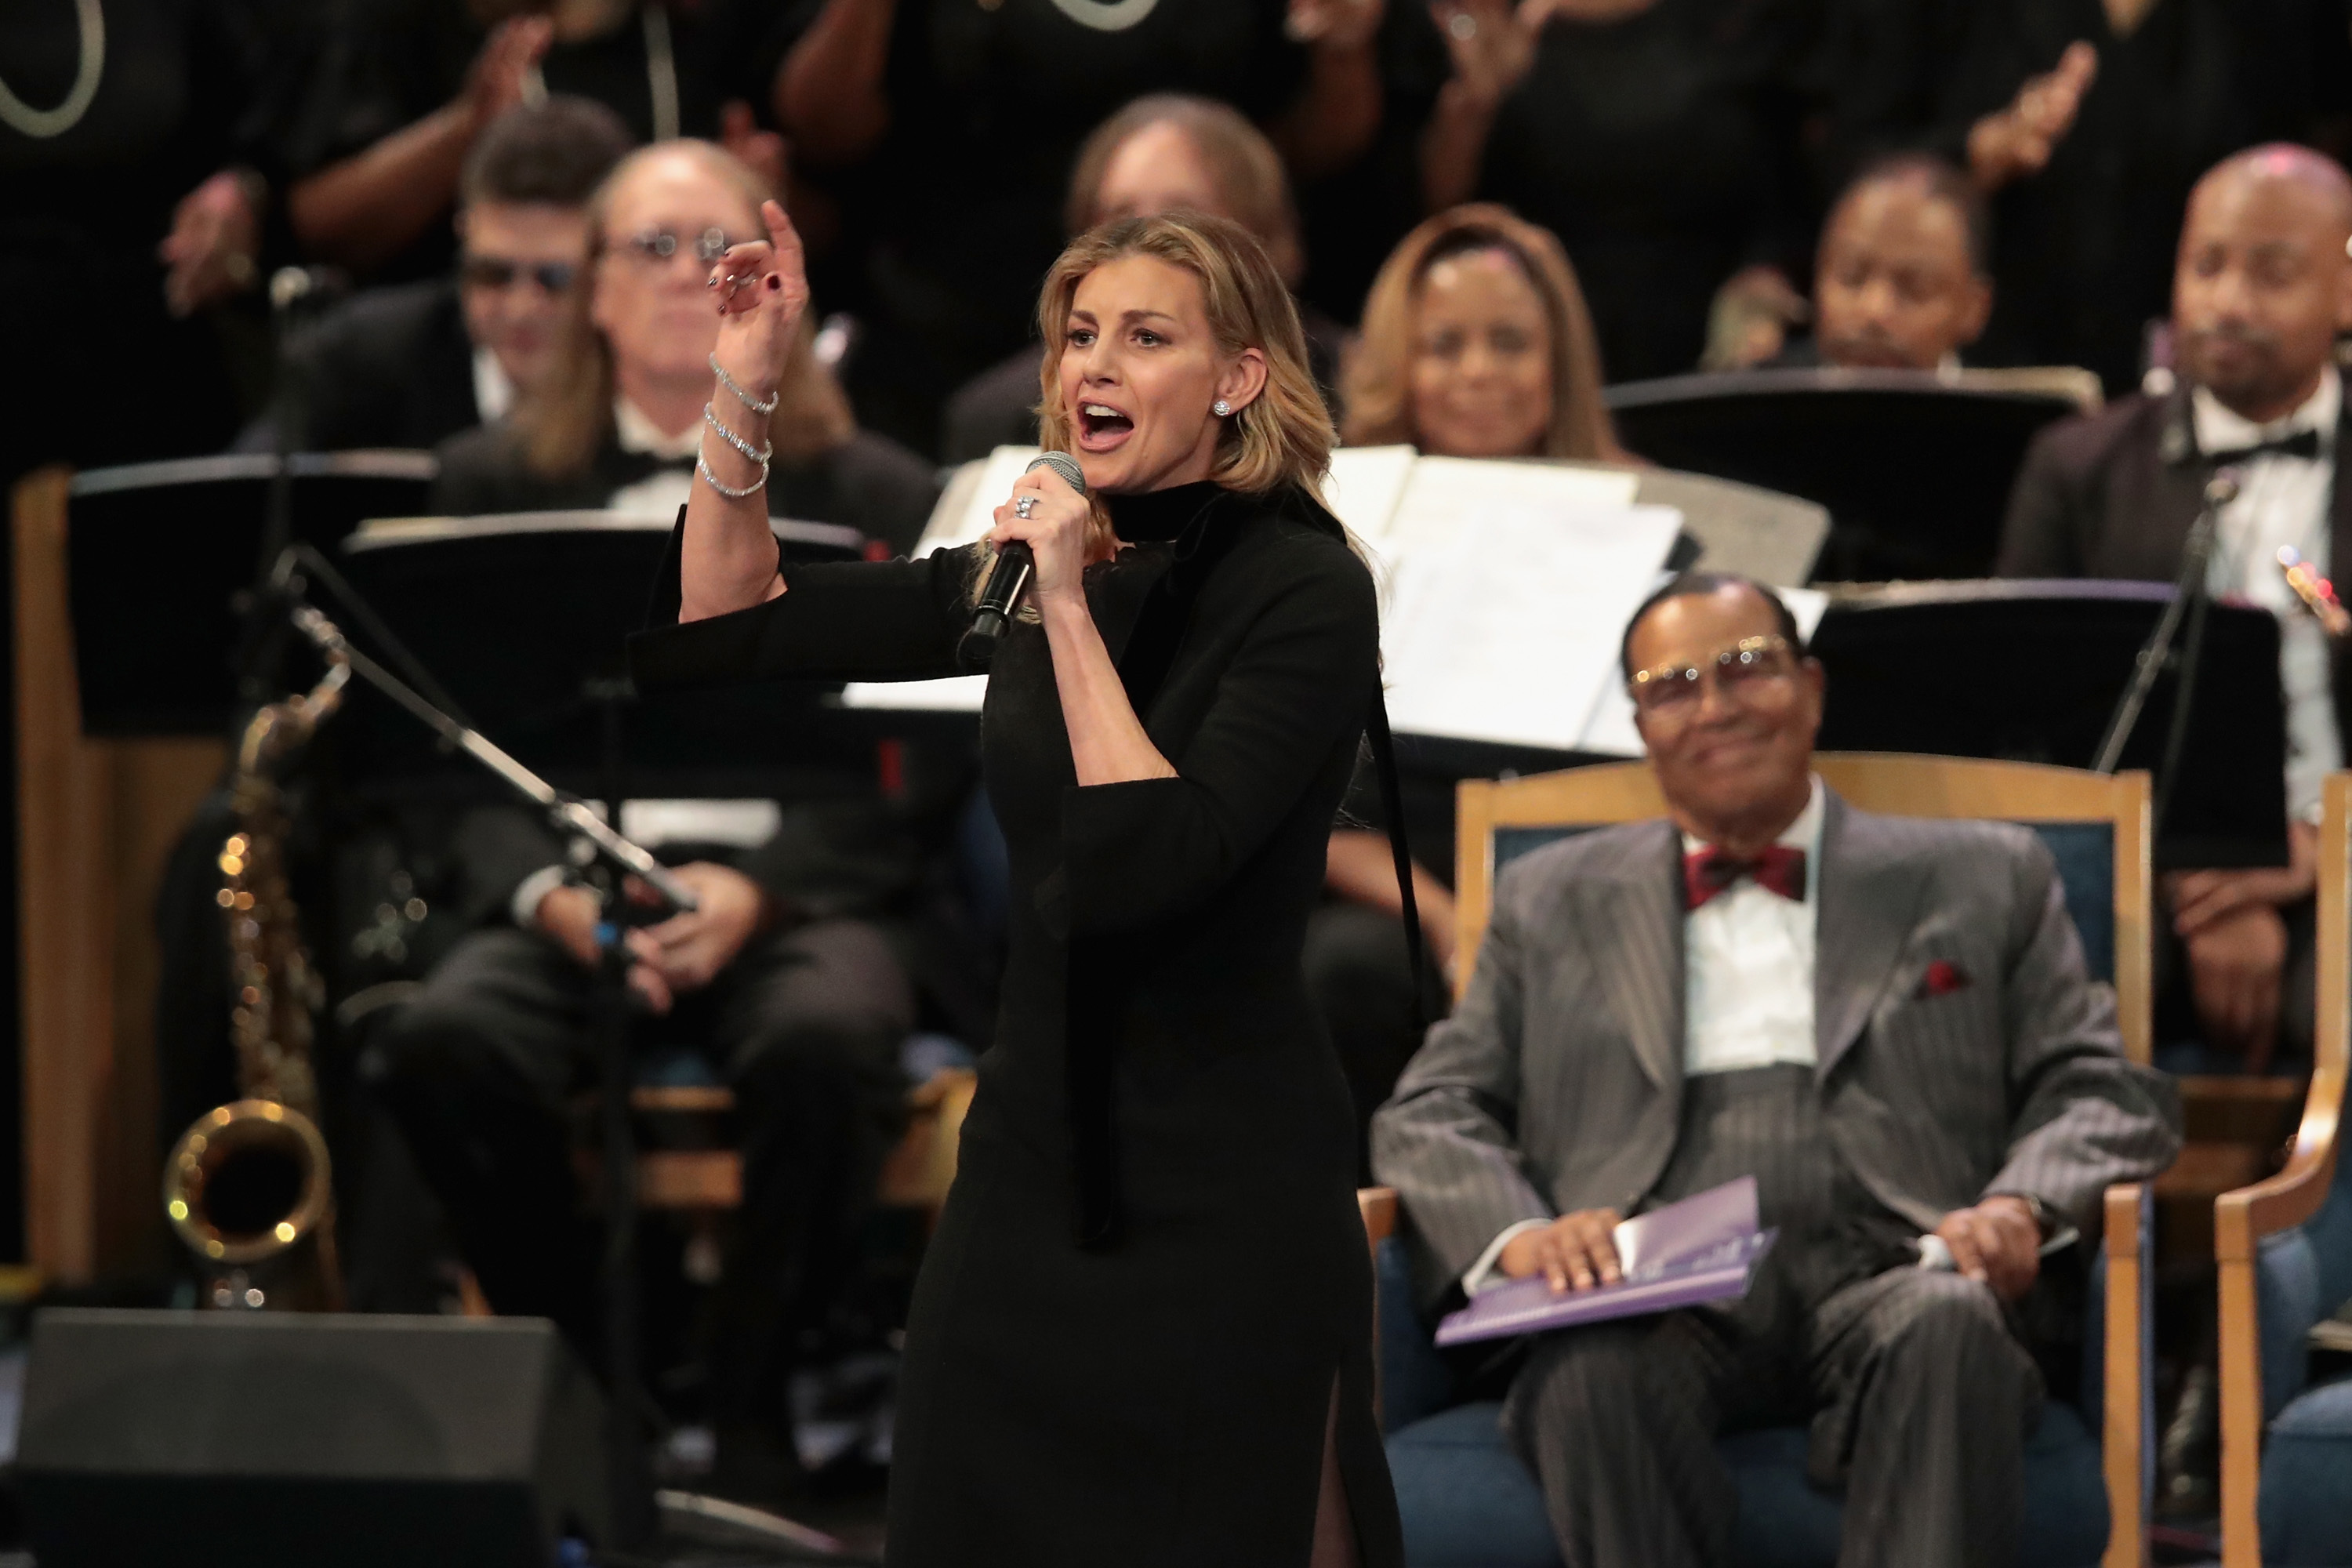 Faith Hill performs during Aretha Franklin's funeral in Detroit on Aug. 31, 2018.